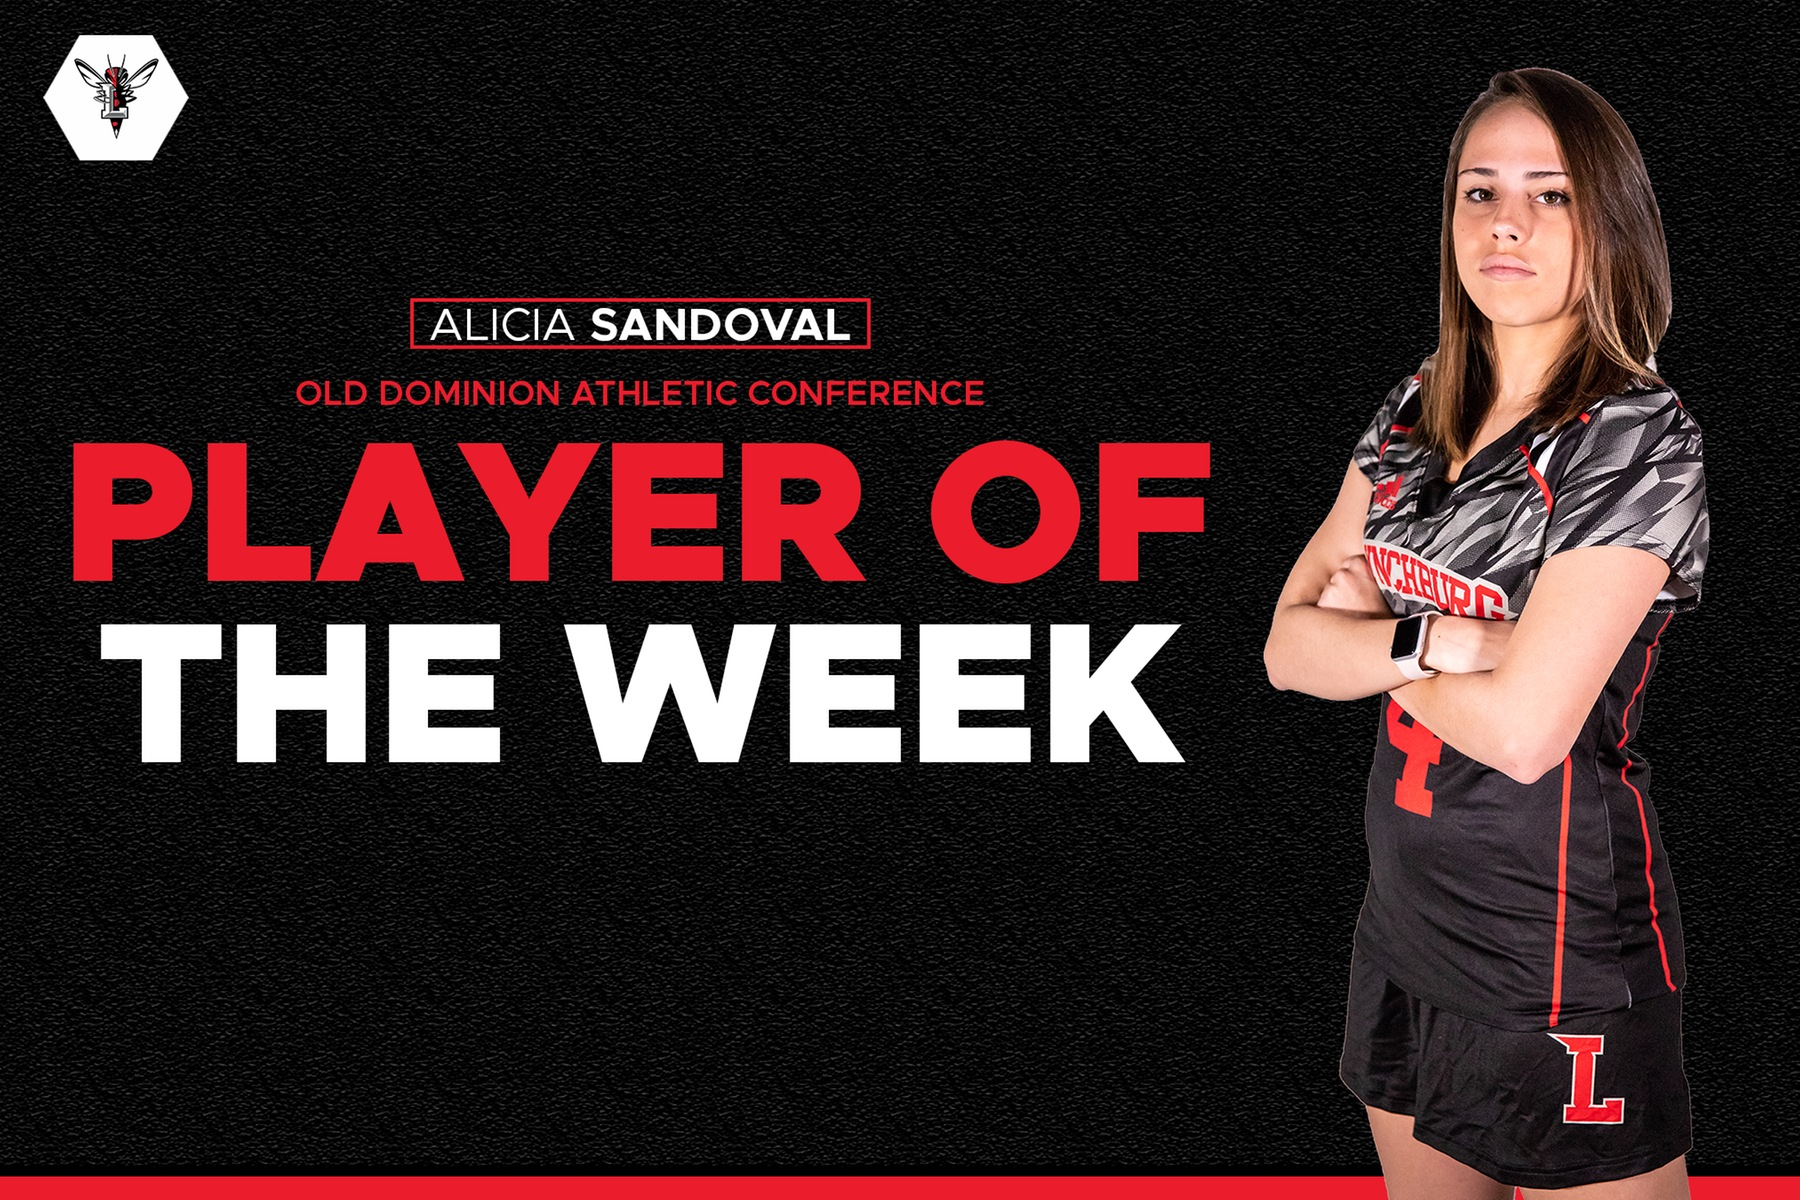 Alicia Sandoval standing with arms crossed in uniform over black player of the week background.